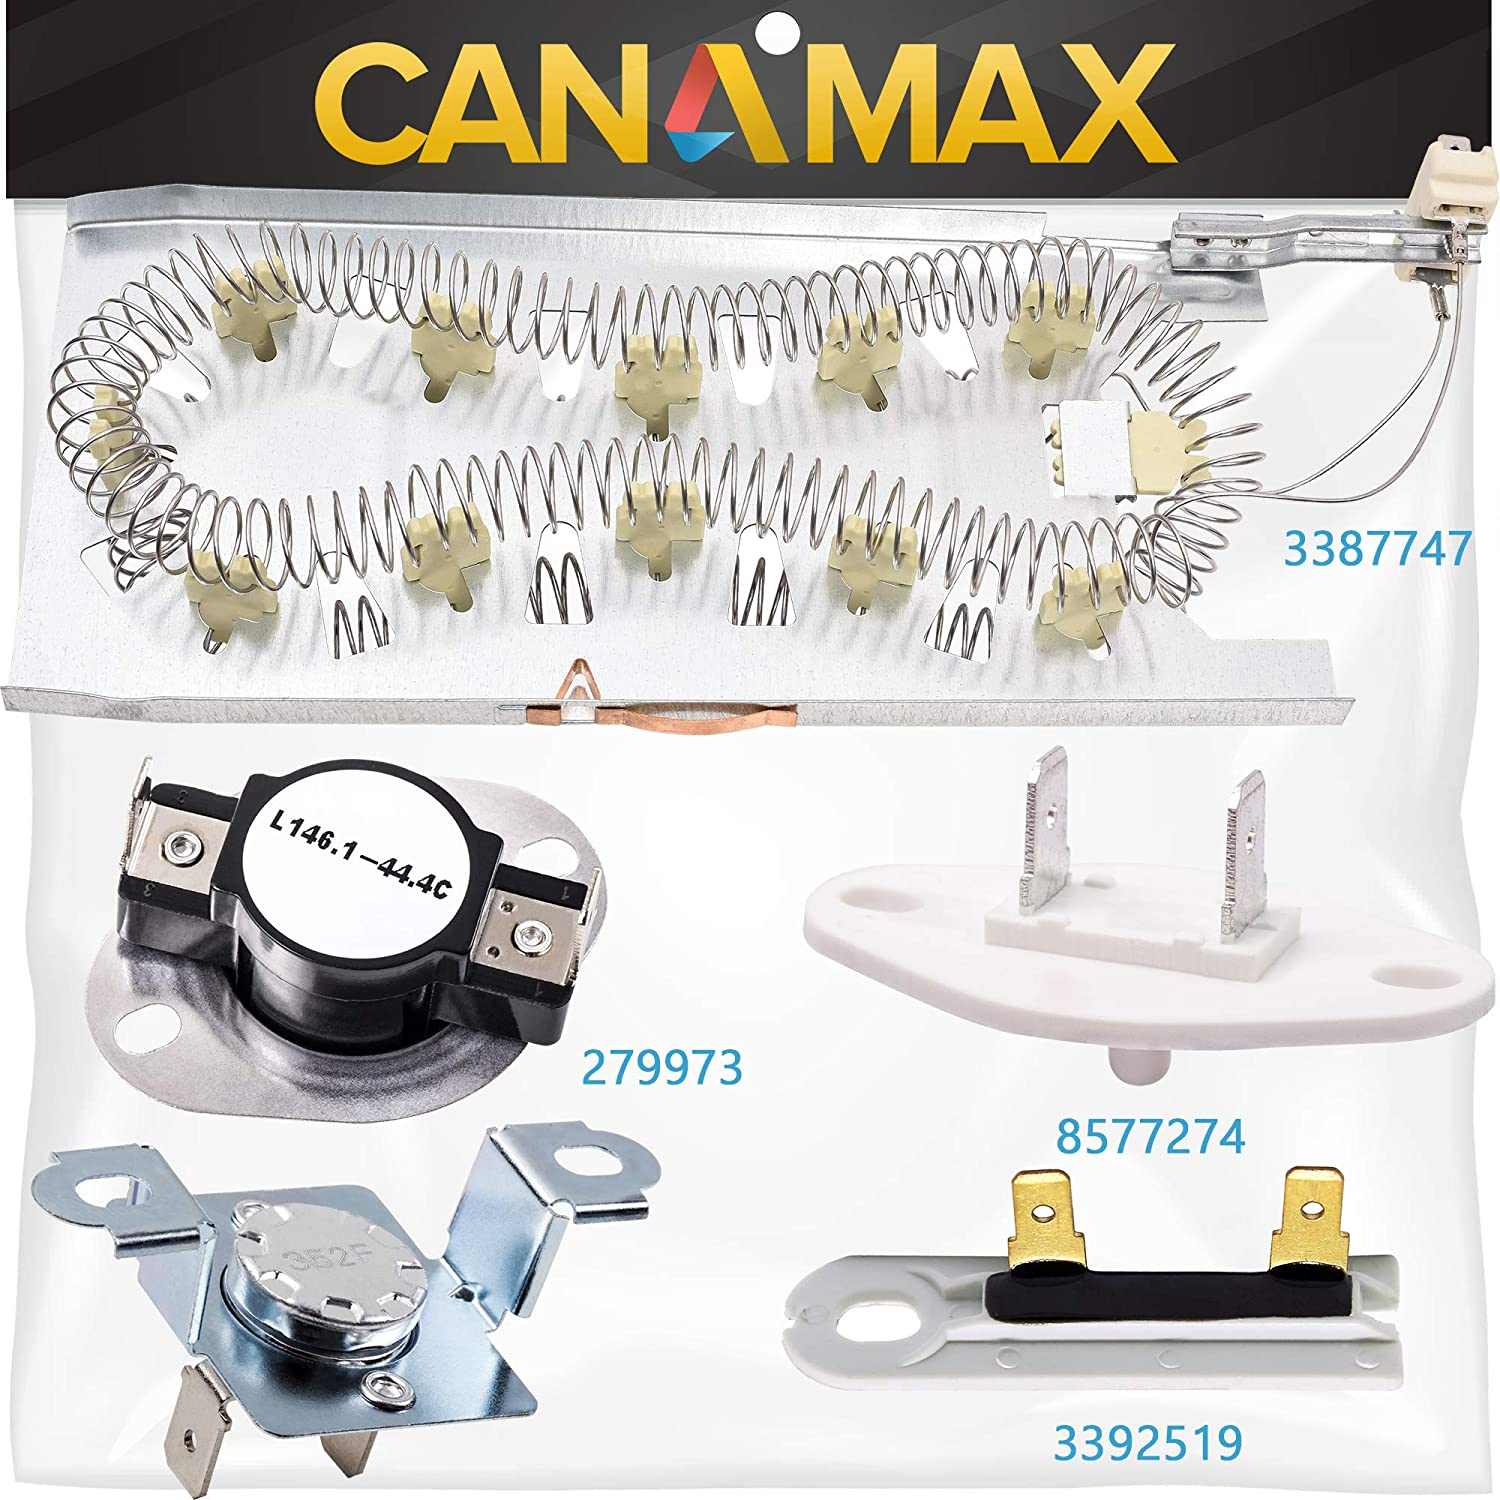 3387747 & 279973 & 3392519 & 8577274 Dryer Heating Element and Thermal Cut-off Fuse Kit Premium Replacement by Canamax - Compatible with Whirlpool and Kenmore Dryers